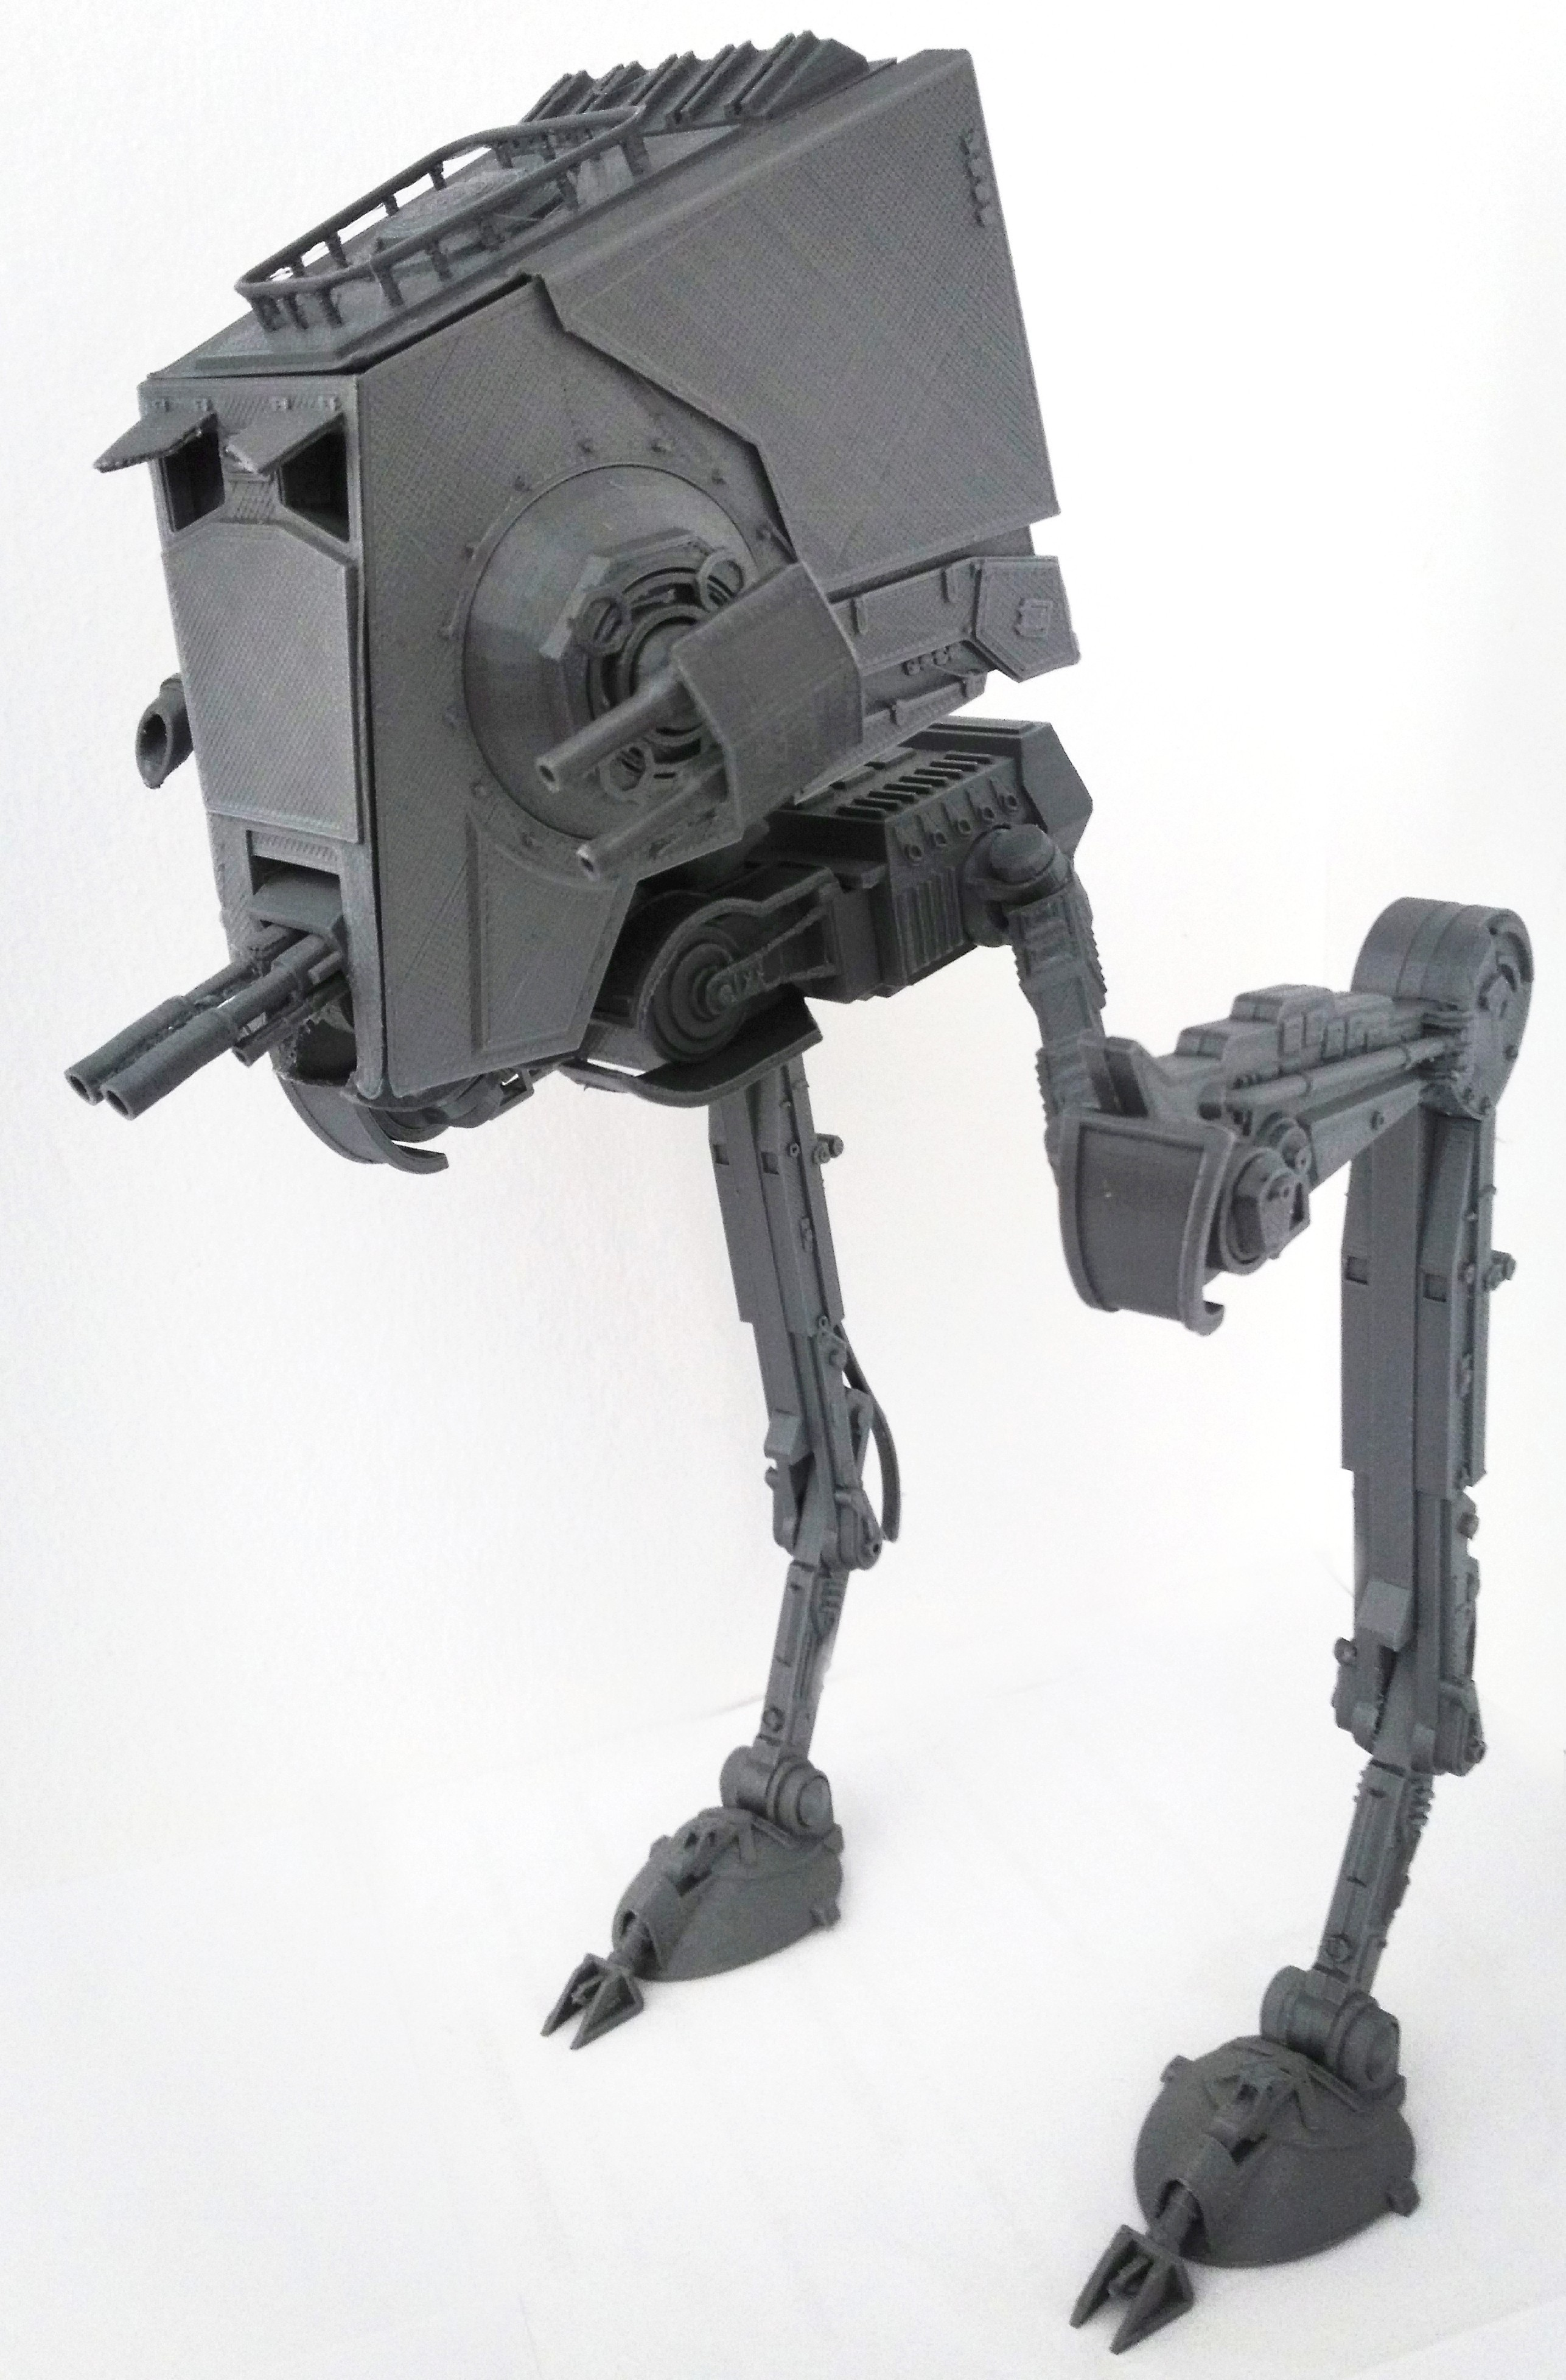 Star Wars ATST Walker - Ready to print - With instructions @ Pinshape